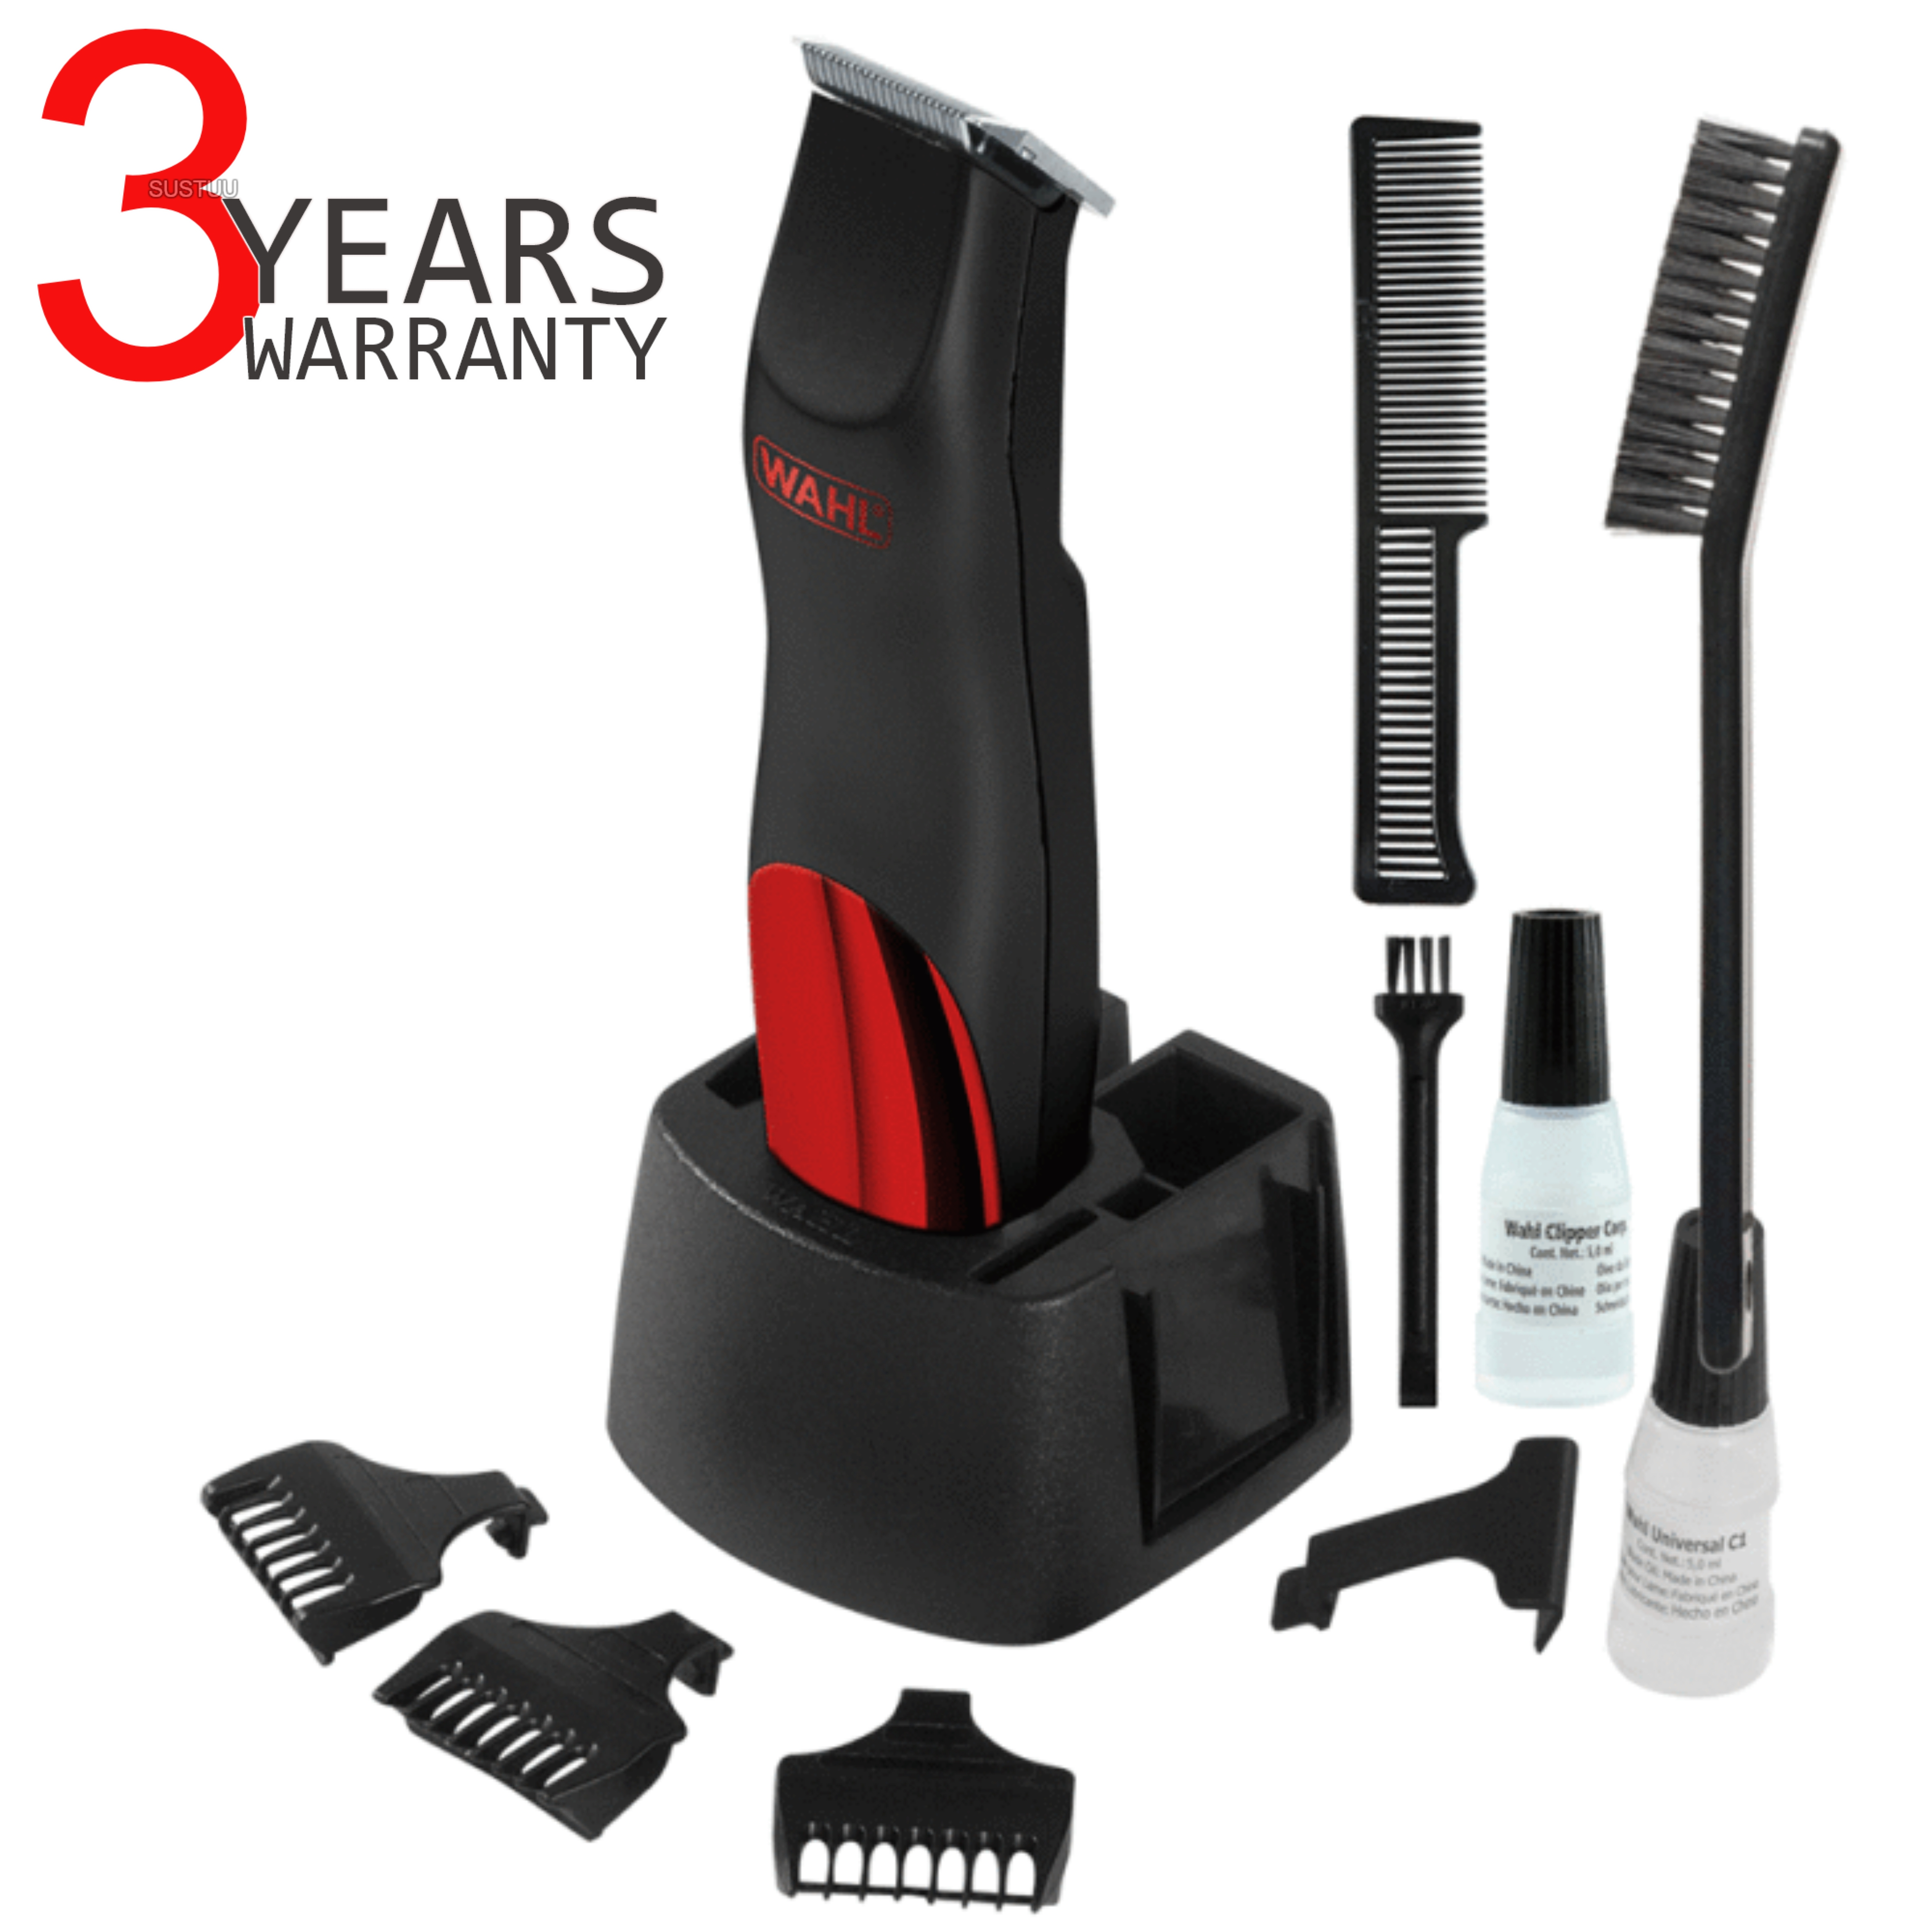 Wahl 9906-4017 Bump Prevent Men's Battery Trimmer Kit | Body & Facial Hair Shaver |